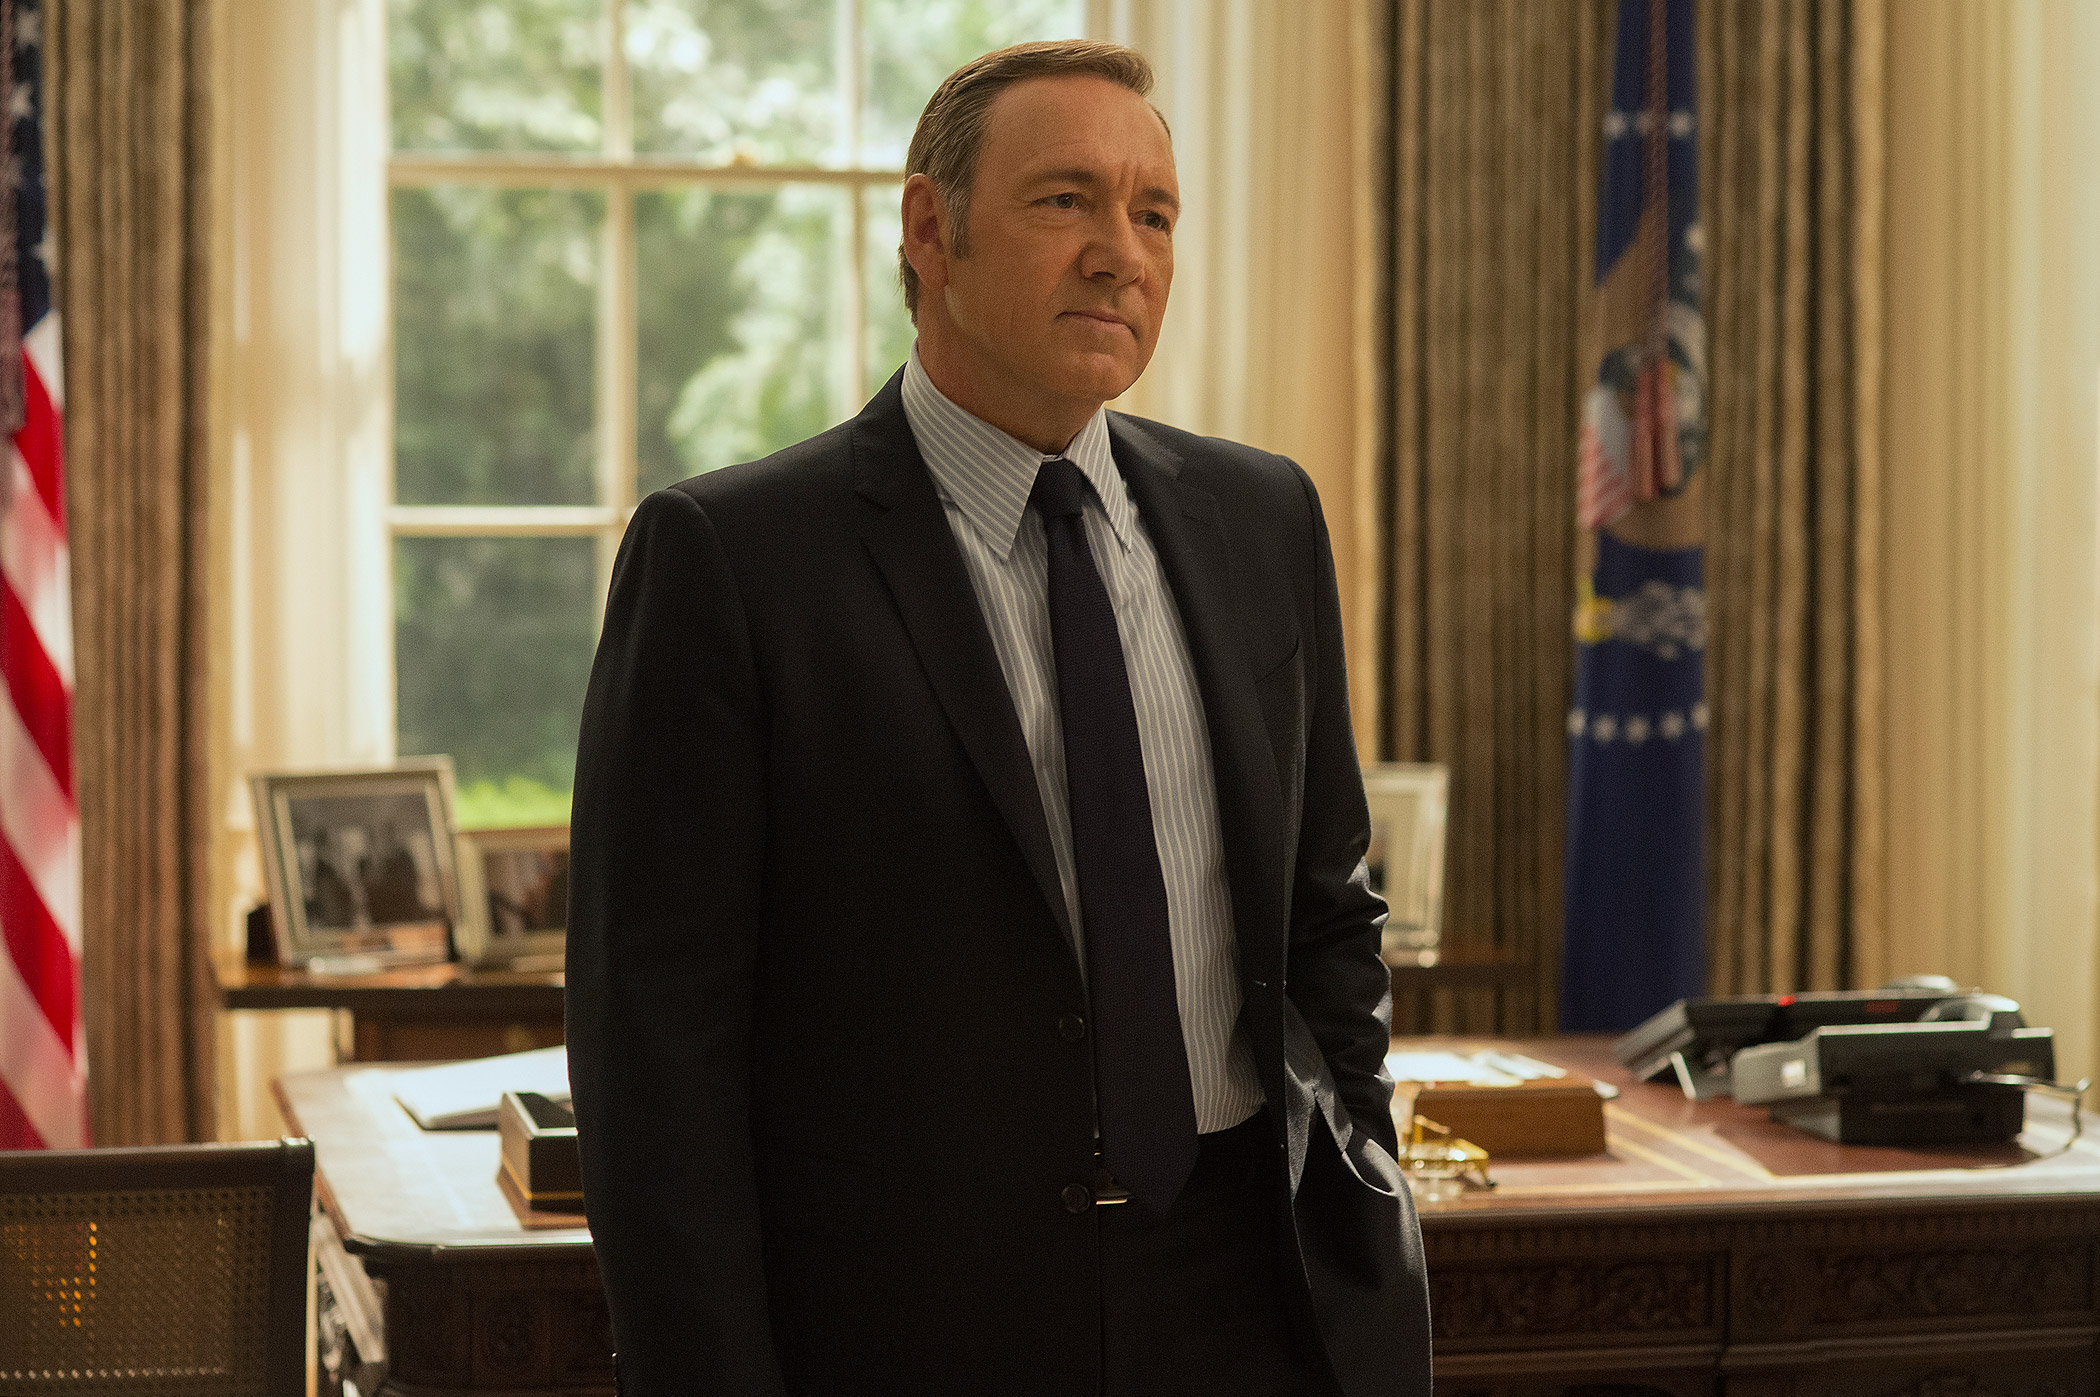 Kevin Spacey as Frank Underwood in Season 3 of House of Cards